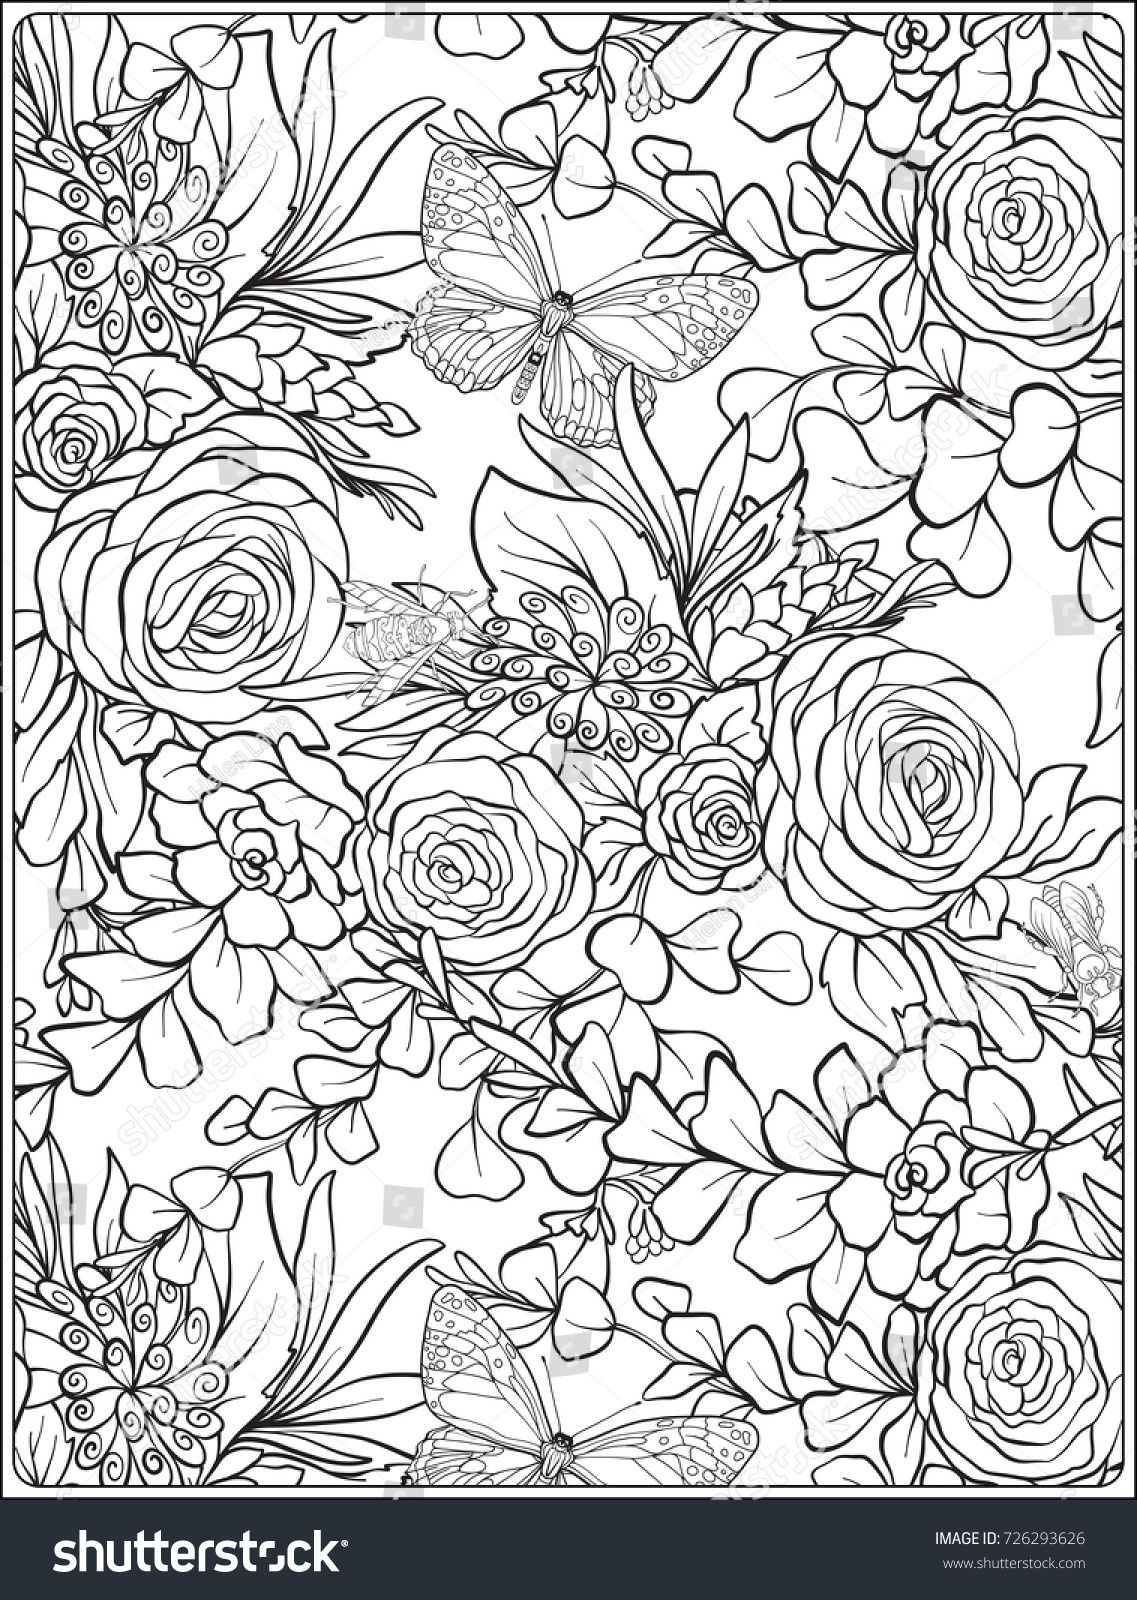 Floral Seamless Pattern With Butterflies And Bees In